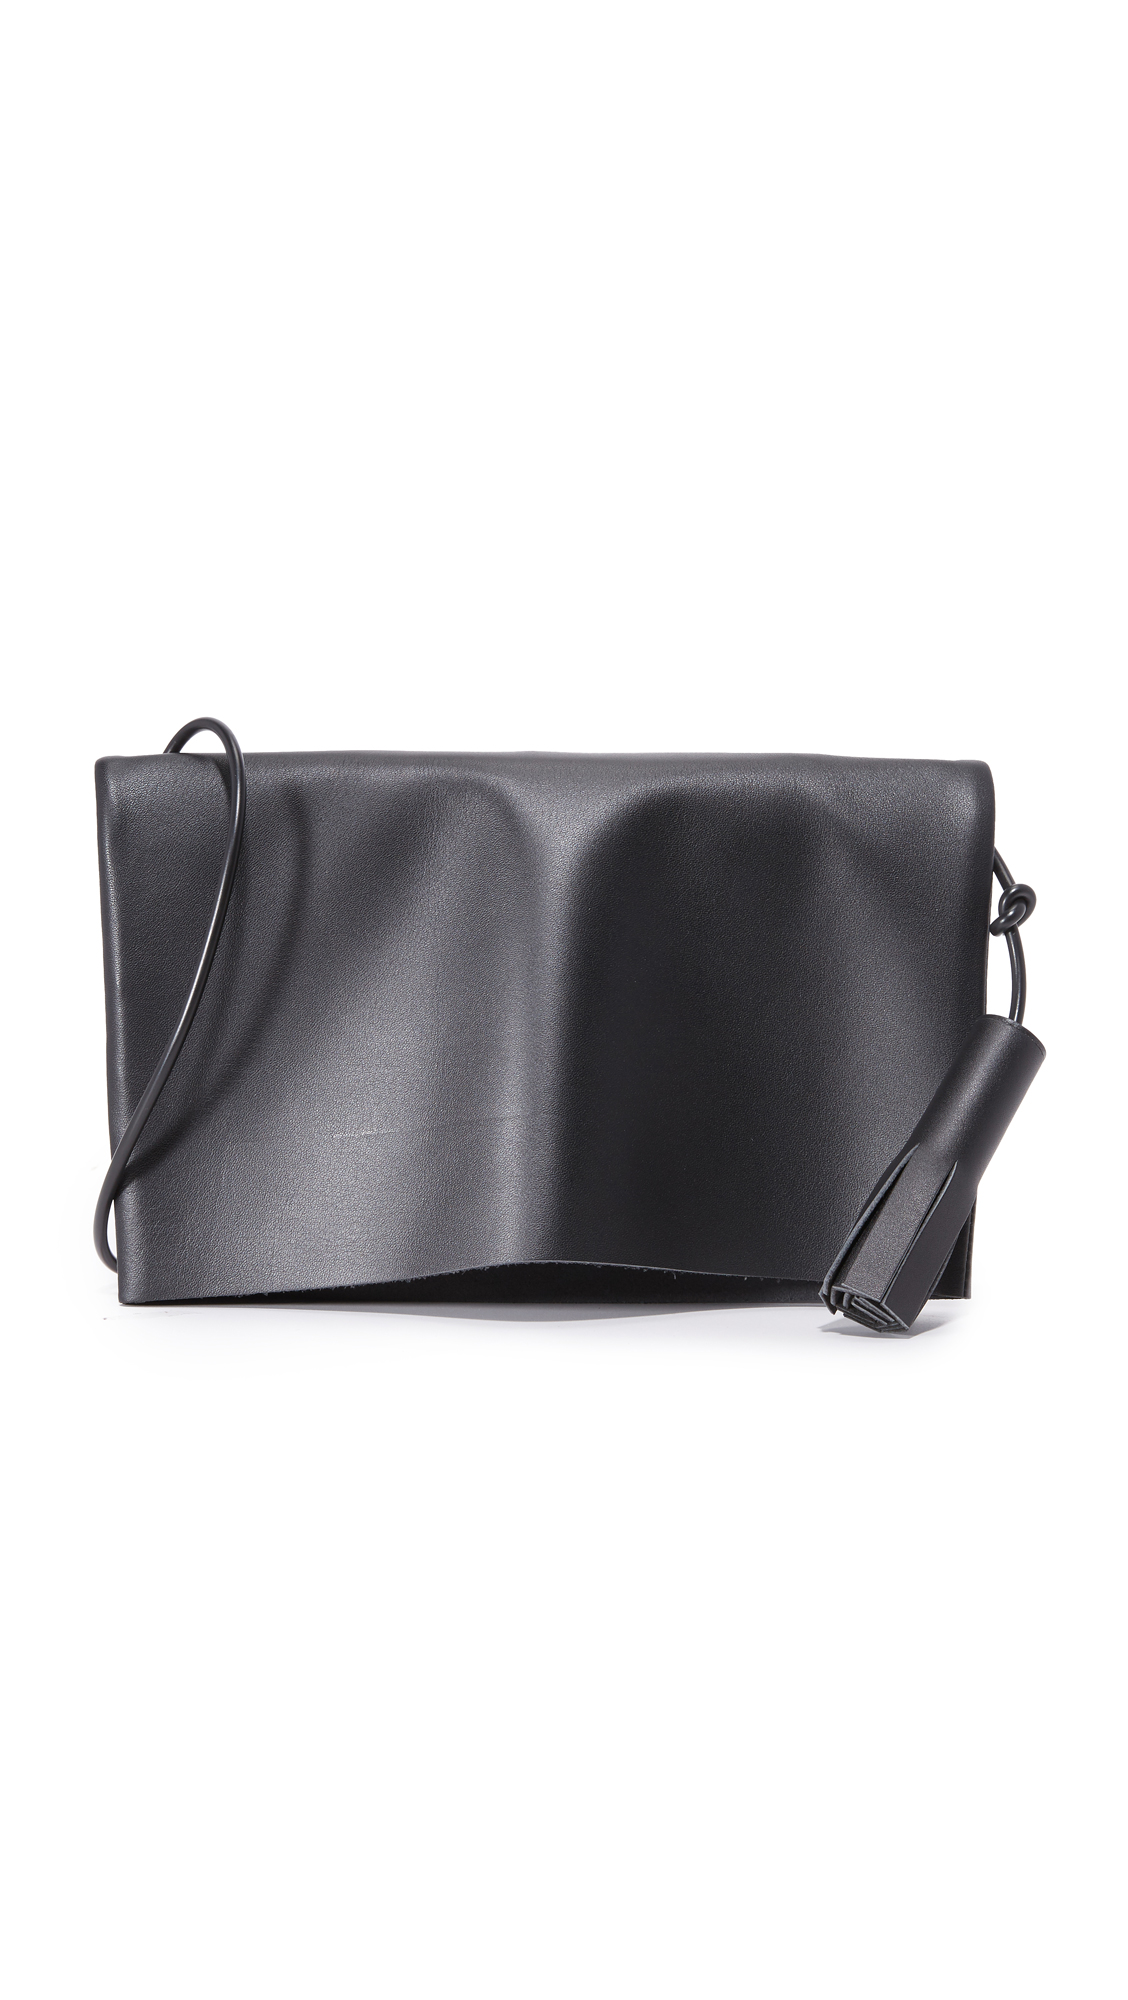 FOLD MESSENGER BAG